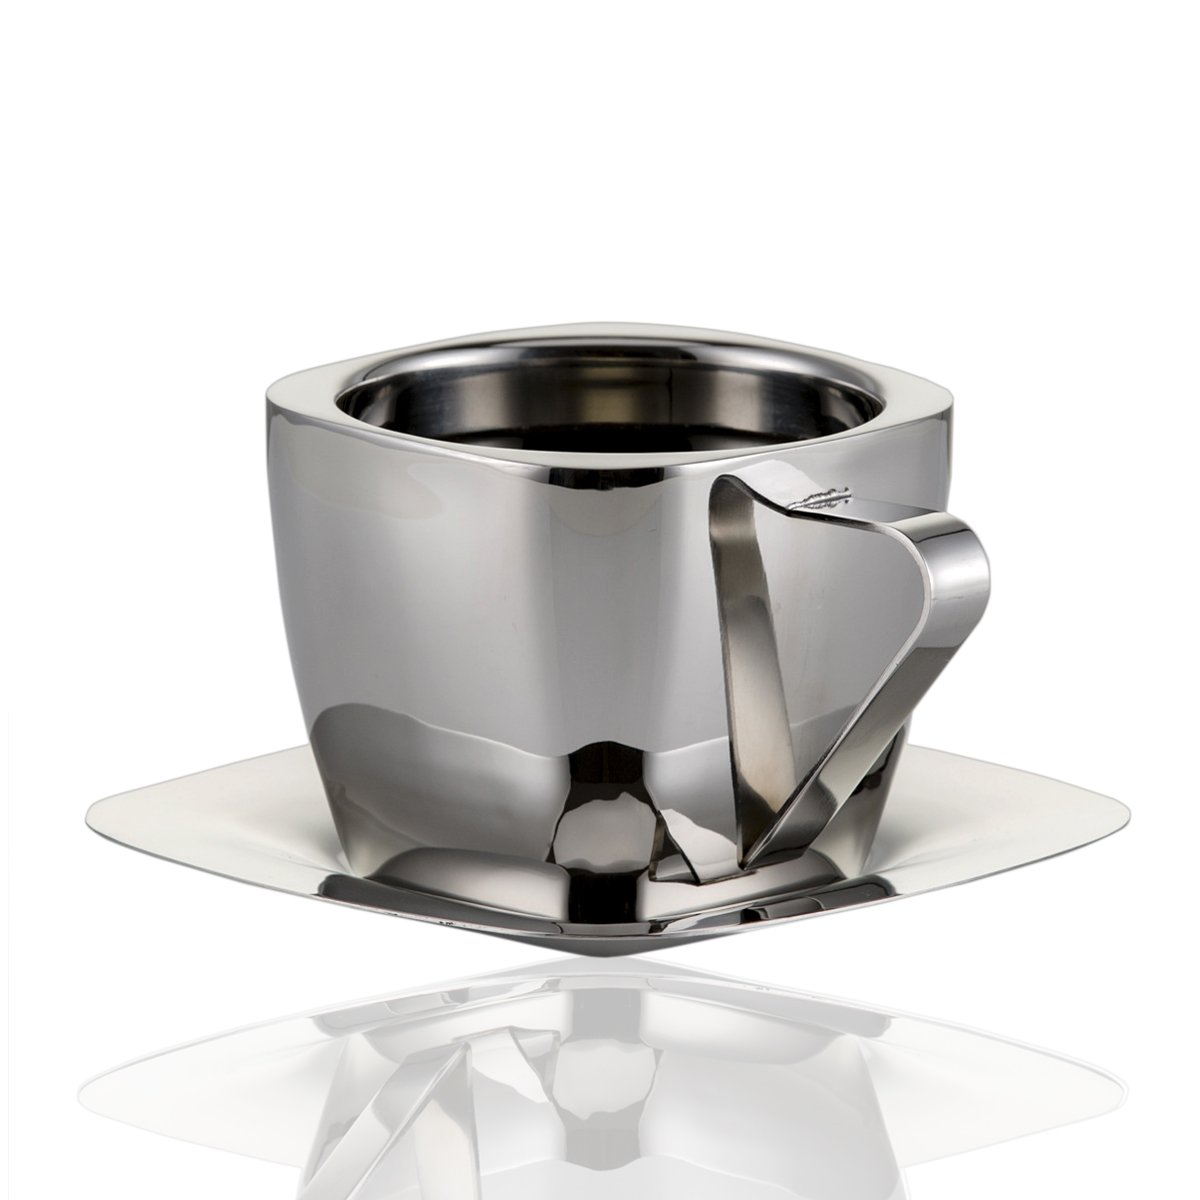 Coffee Cup Set Double Walled Coffee Mugs Stainless Steel Cup & Saucer 3 Ounce (90ml)